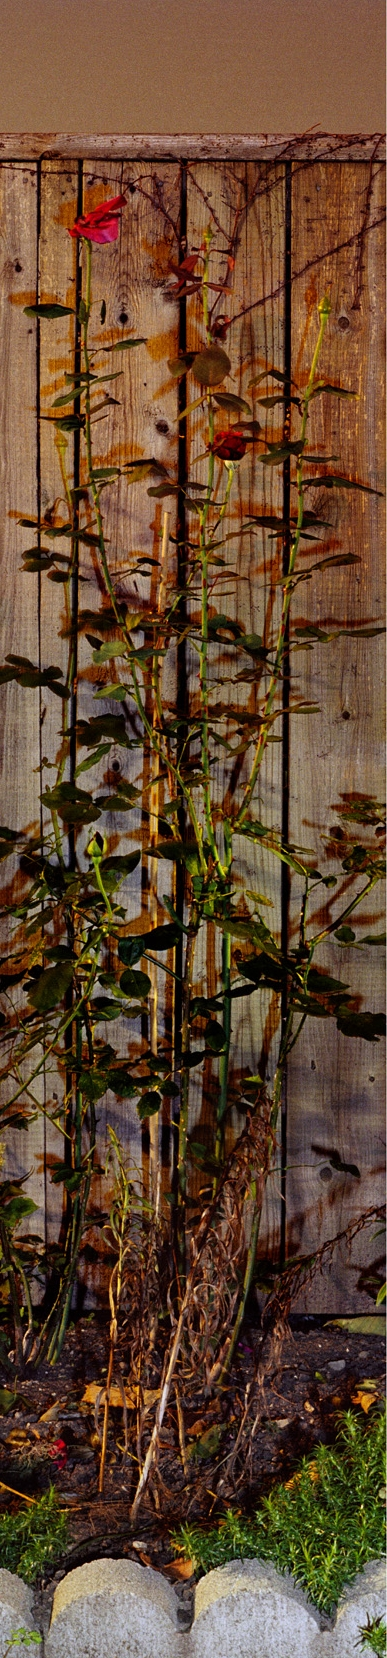 Suzy Lake, Beauty at the End of Every Season #9 , 2006, 72 x 26 inches, c–print, edition of 3